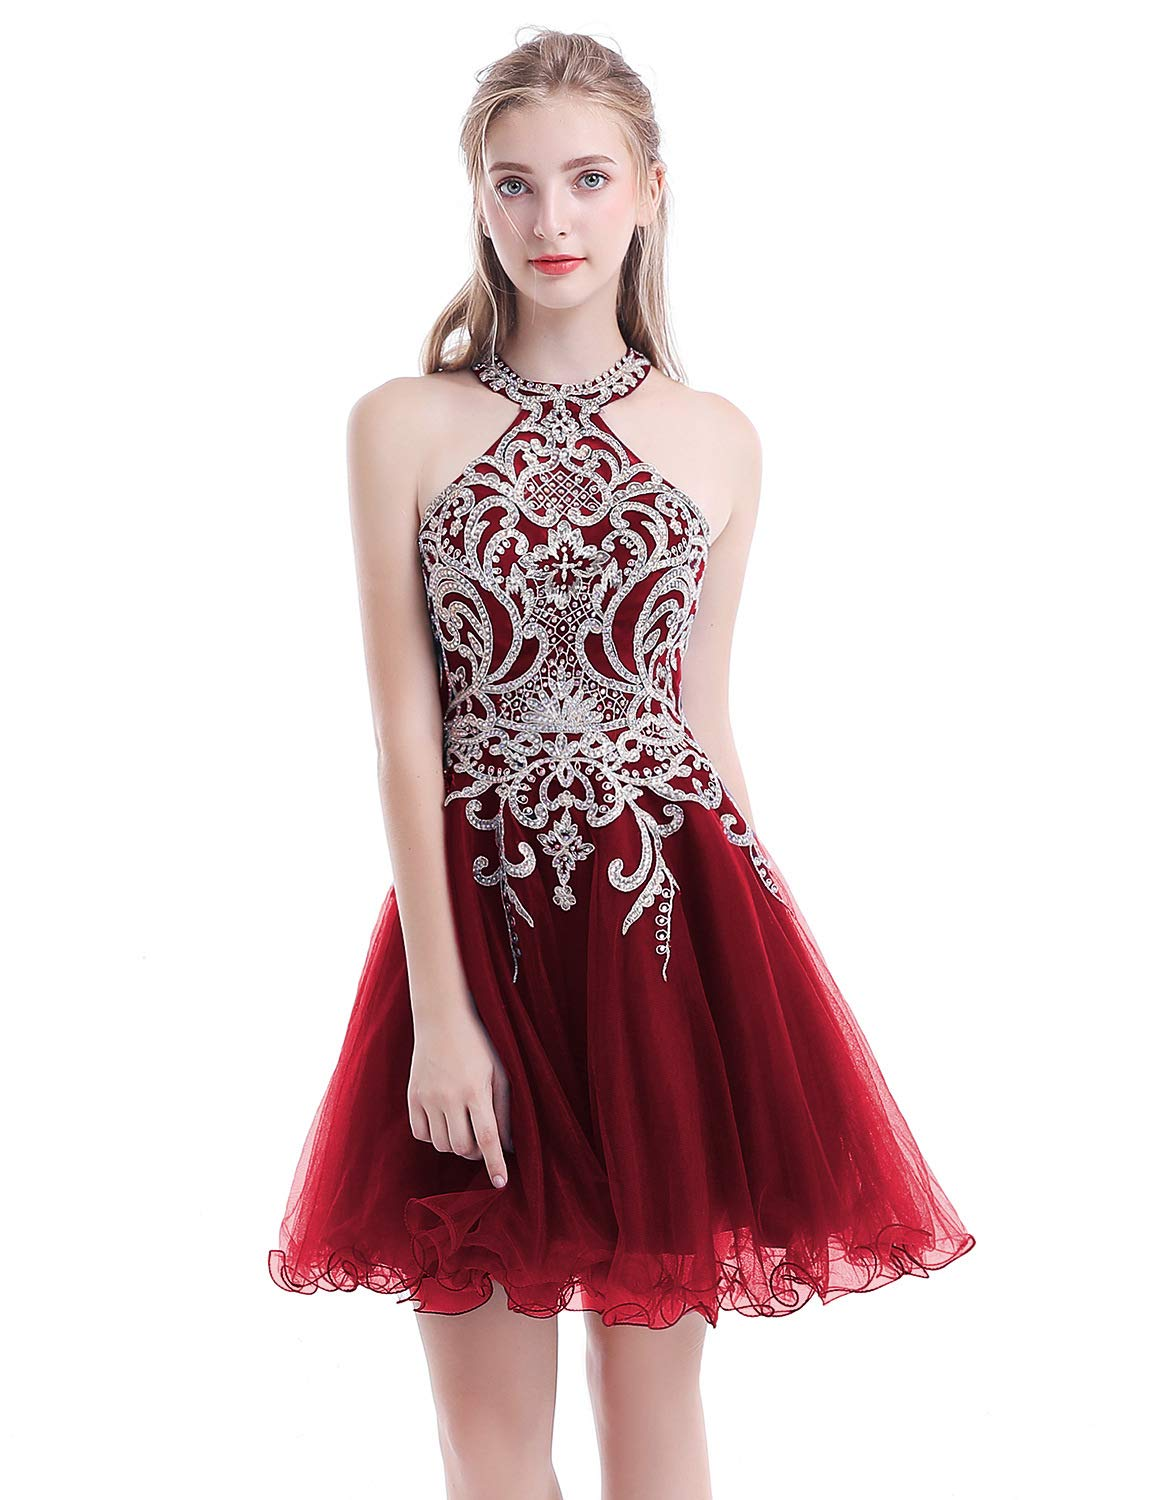 Aurora Bridal Women's Halter Beaded Homecoming Dresses 2018 Short Tulle Prom Gown Size 2 Burgundy